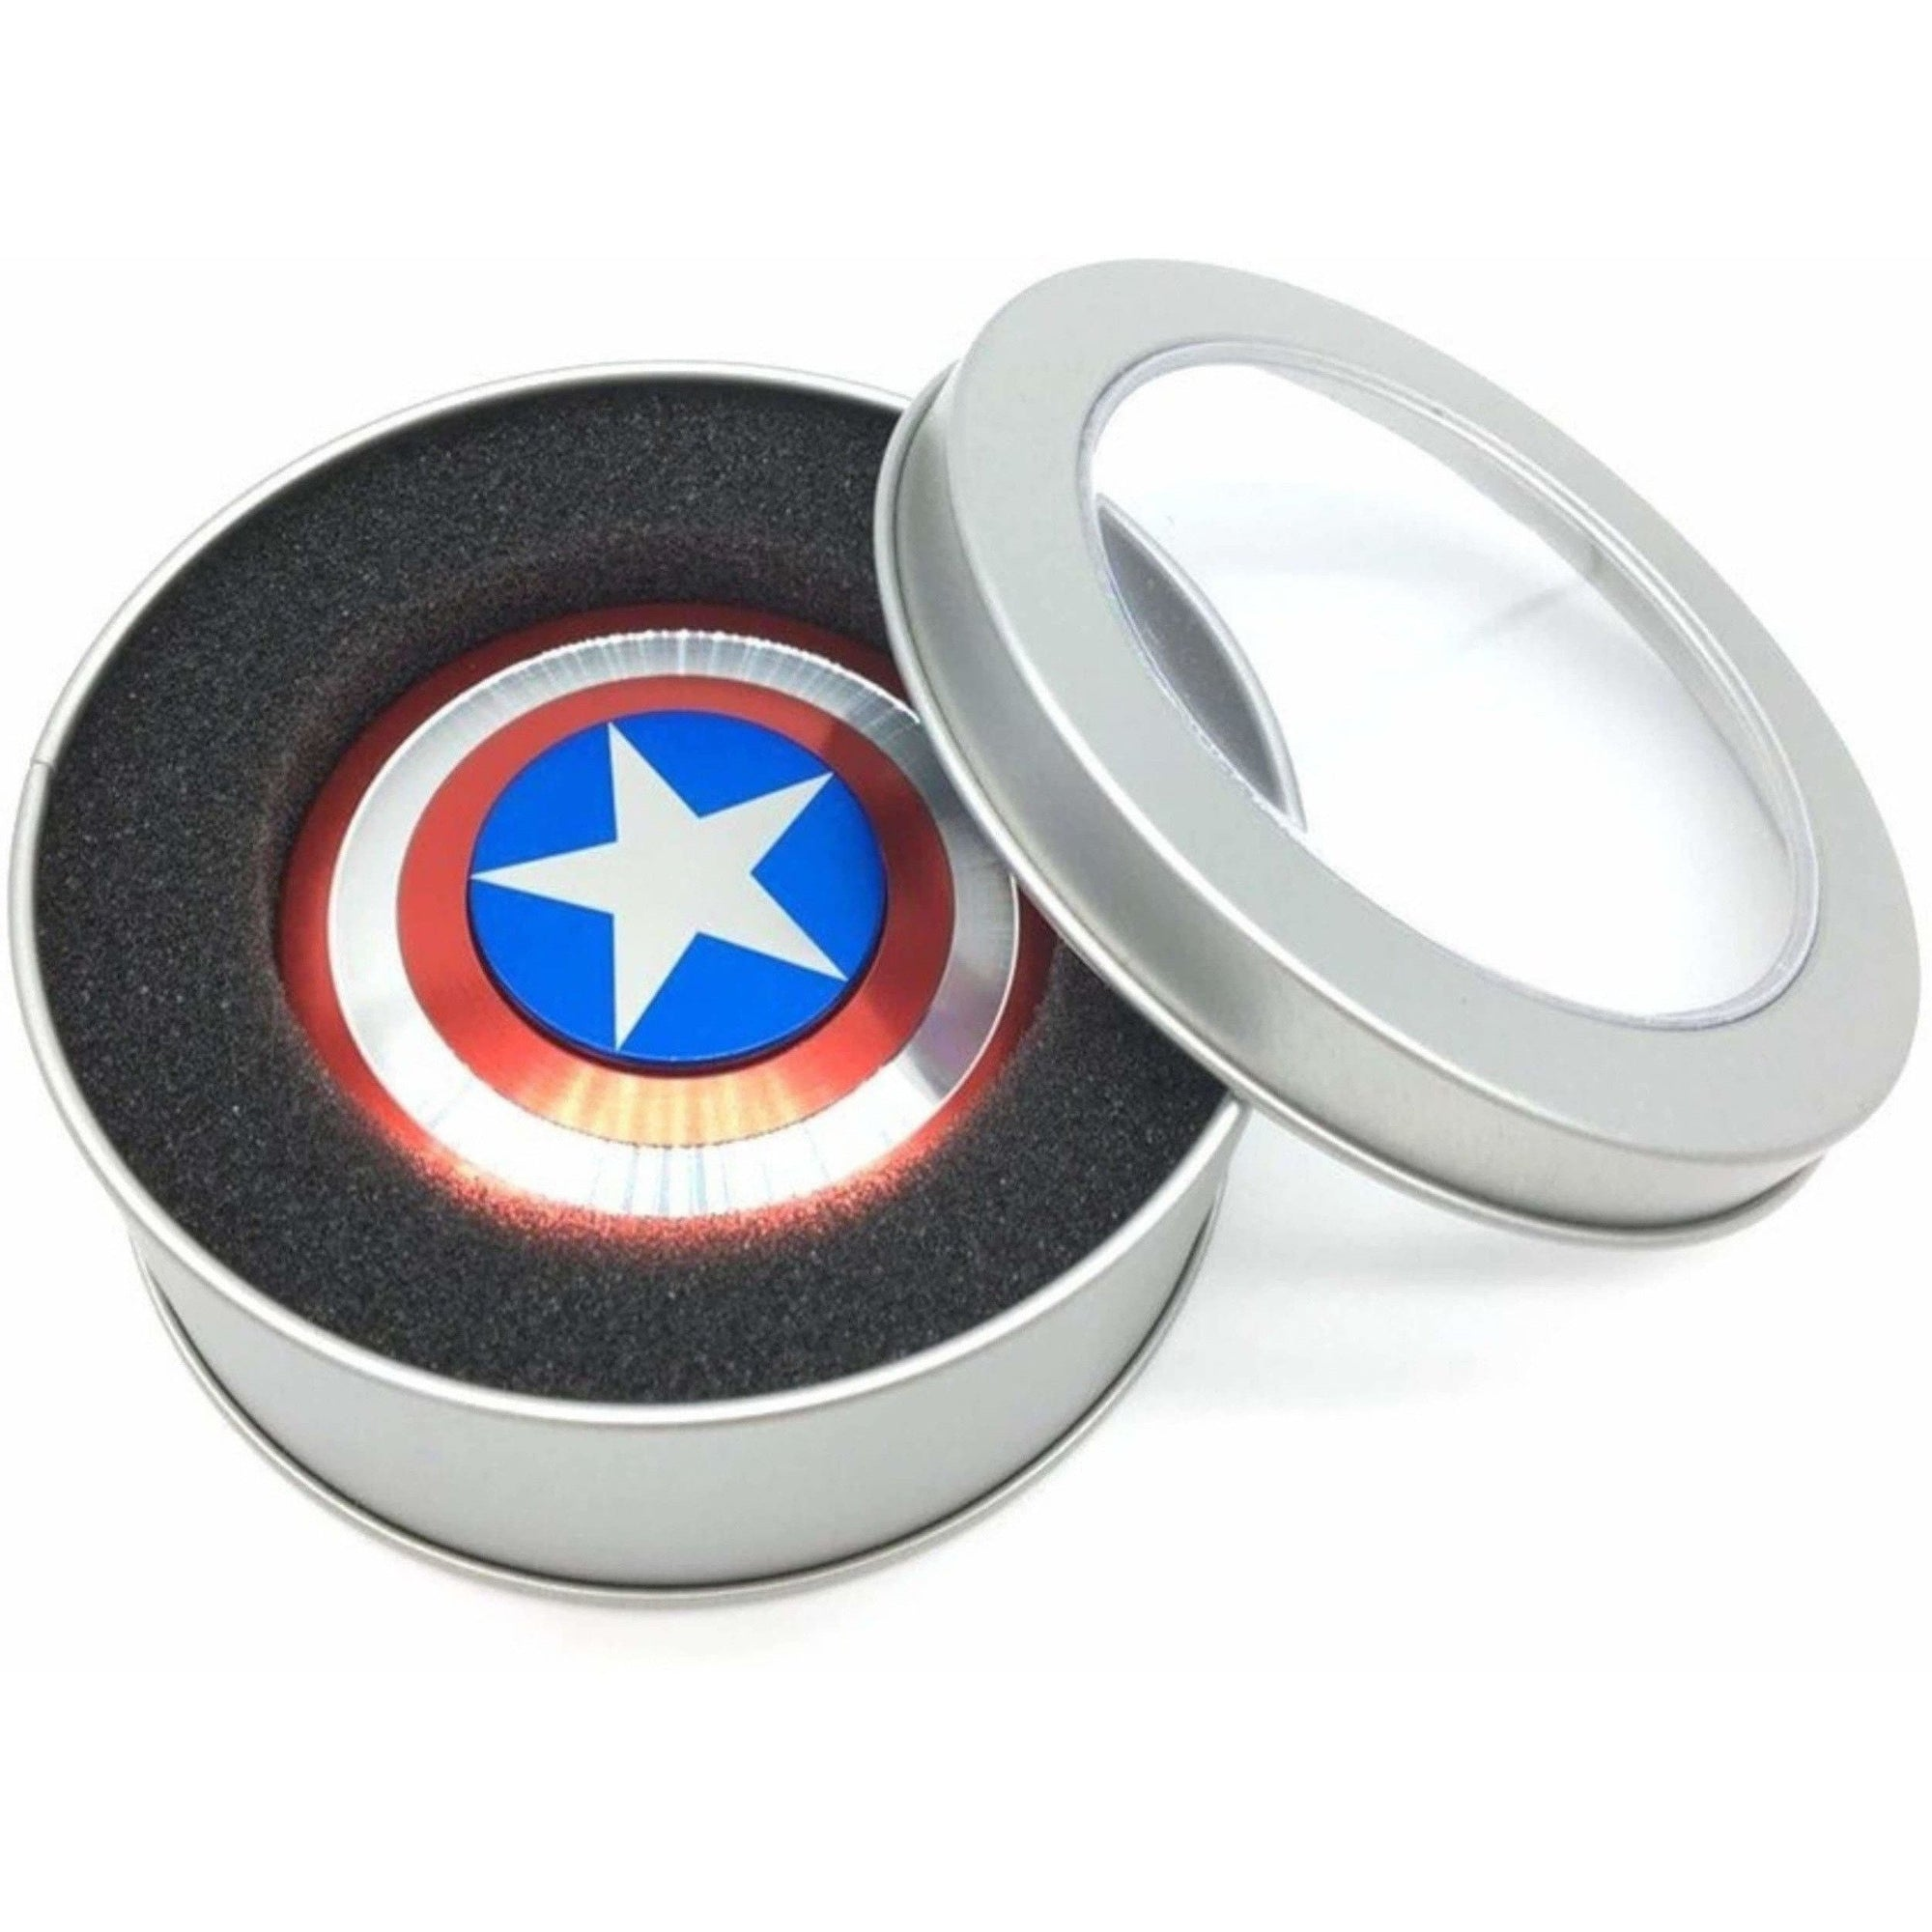 S.Blaze Amazing Metal Rounded Captain America Avenger Shield Fidget Spinner Toy for Kids & Adults  (Red)